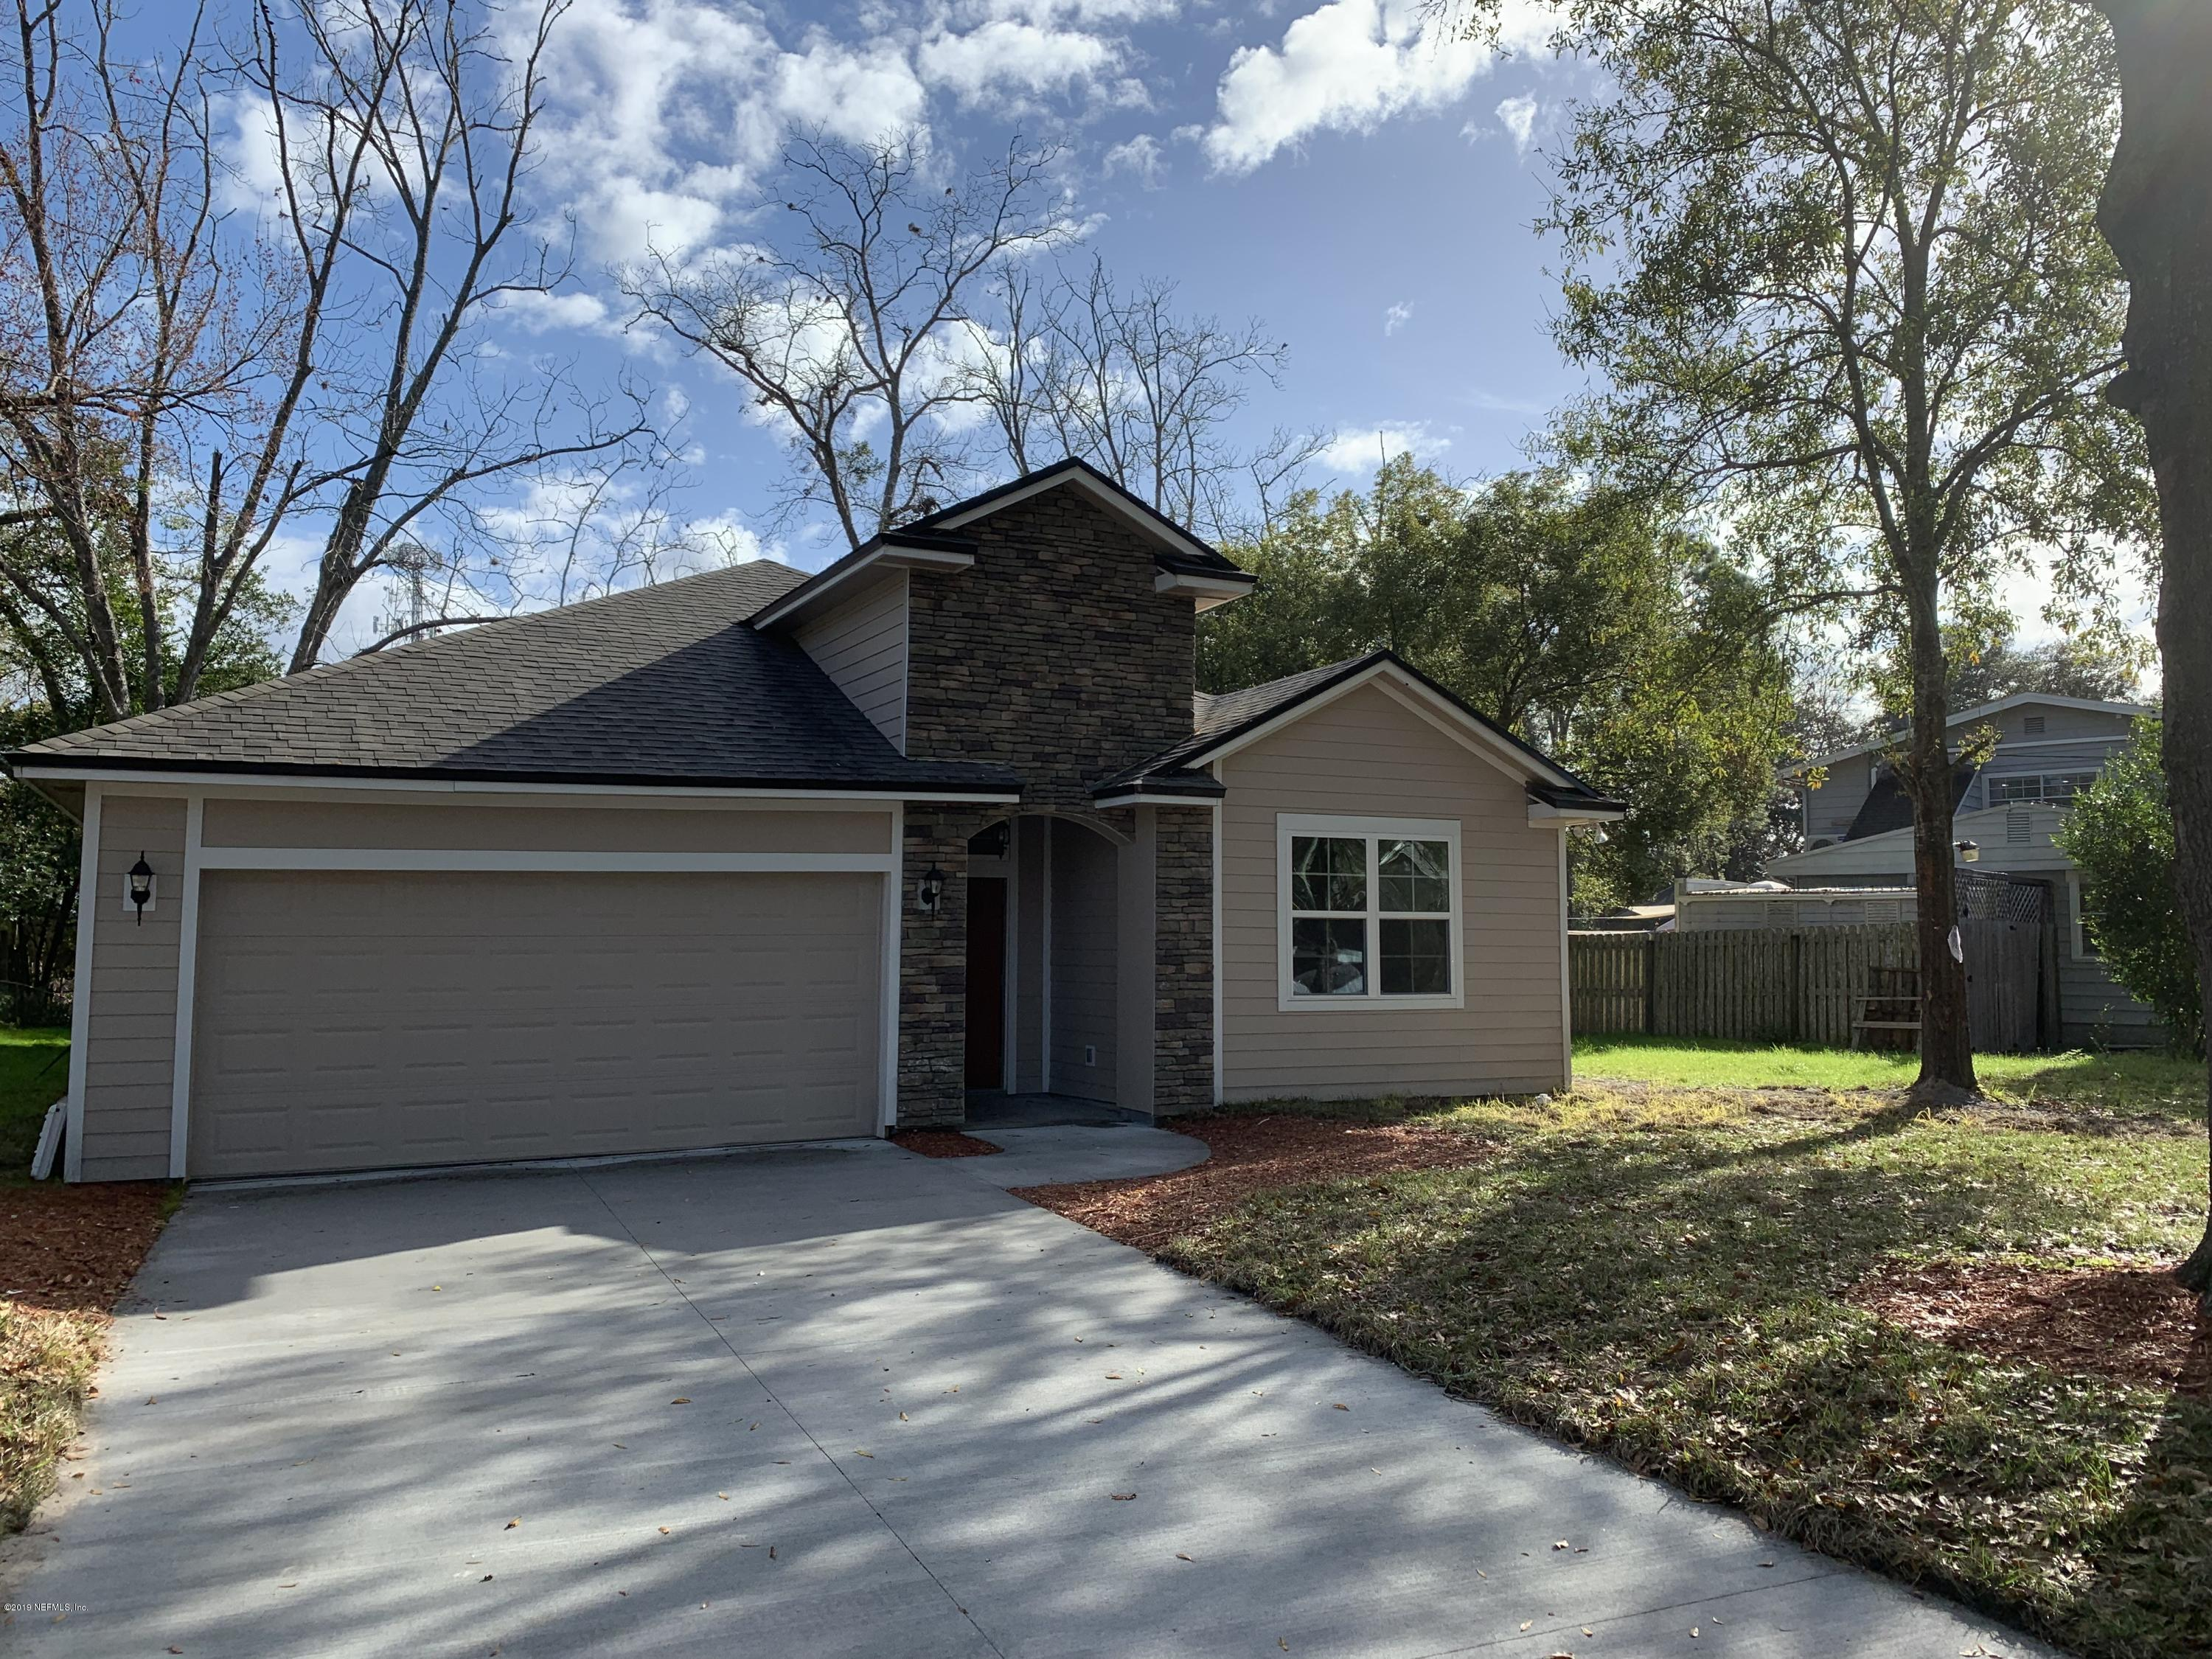 Photo of 4329 FENDER, JACKSONVILLE, FL 32210